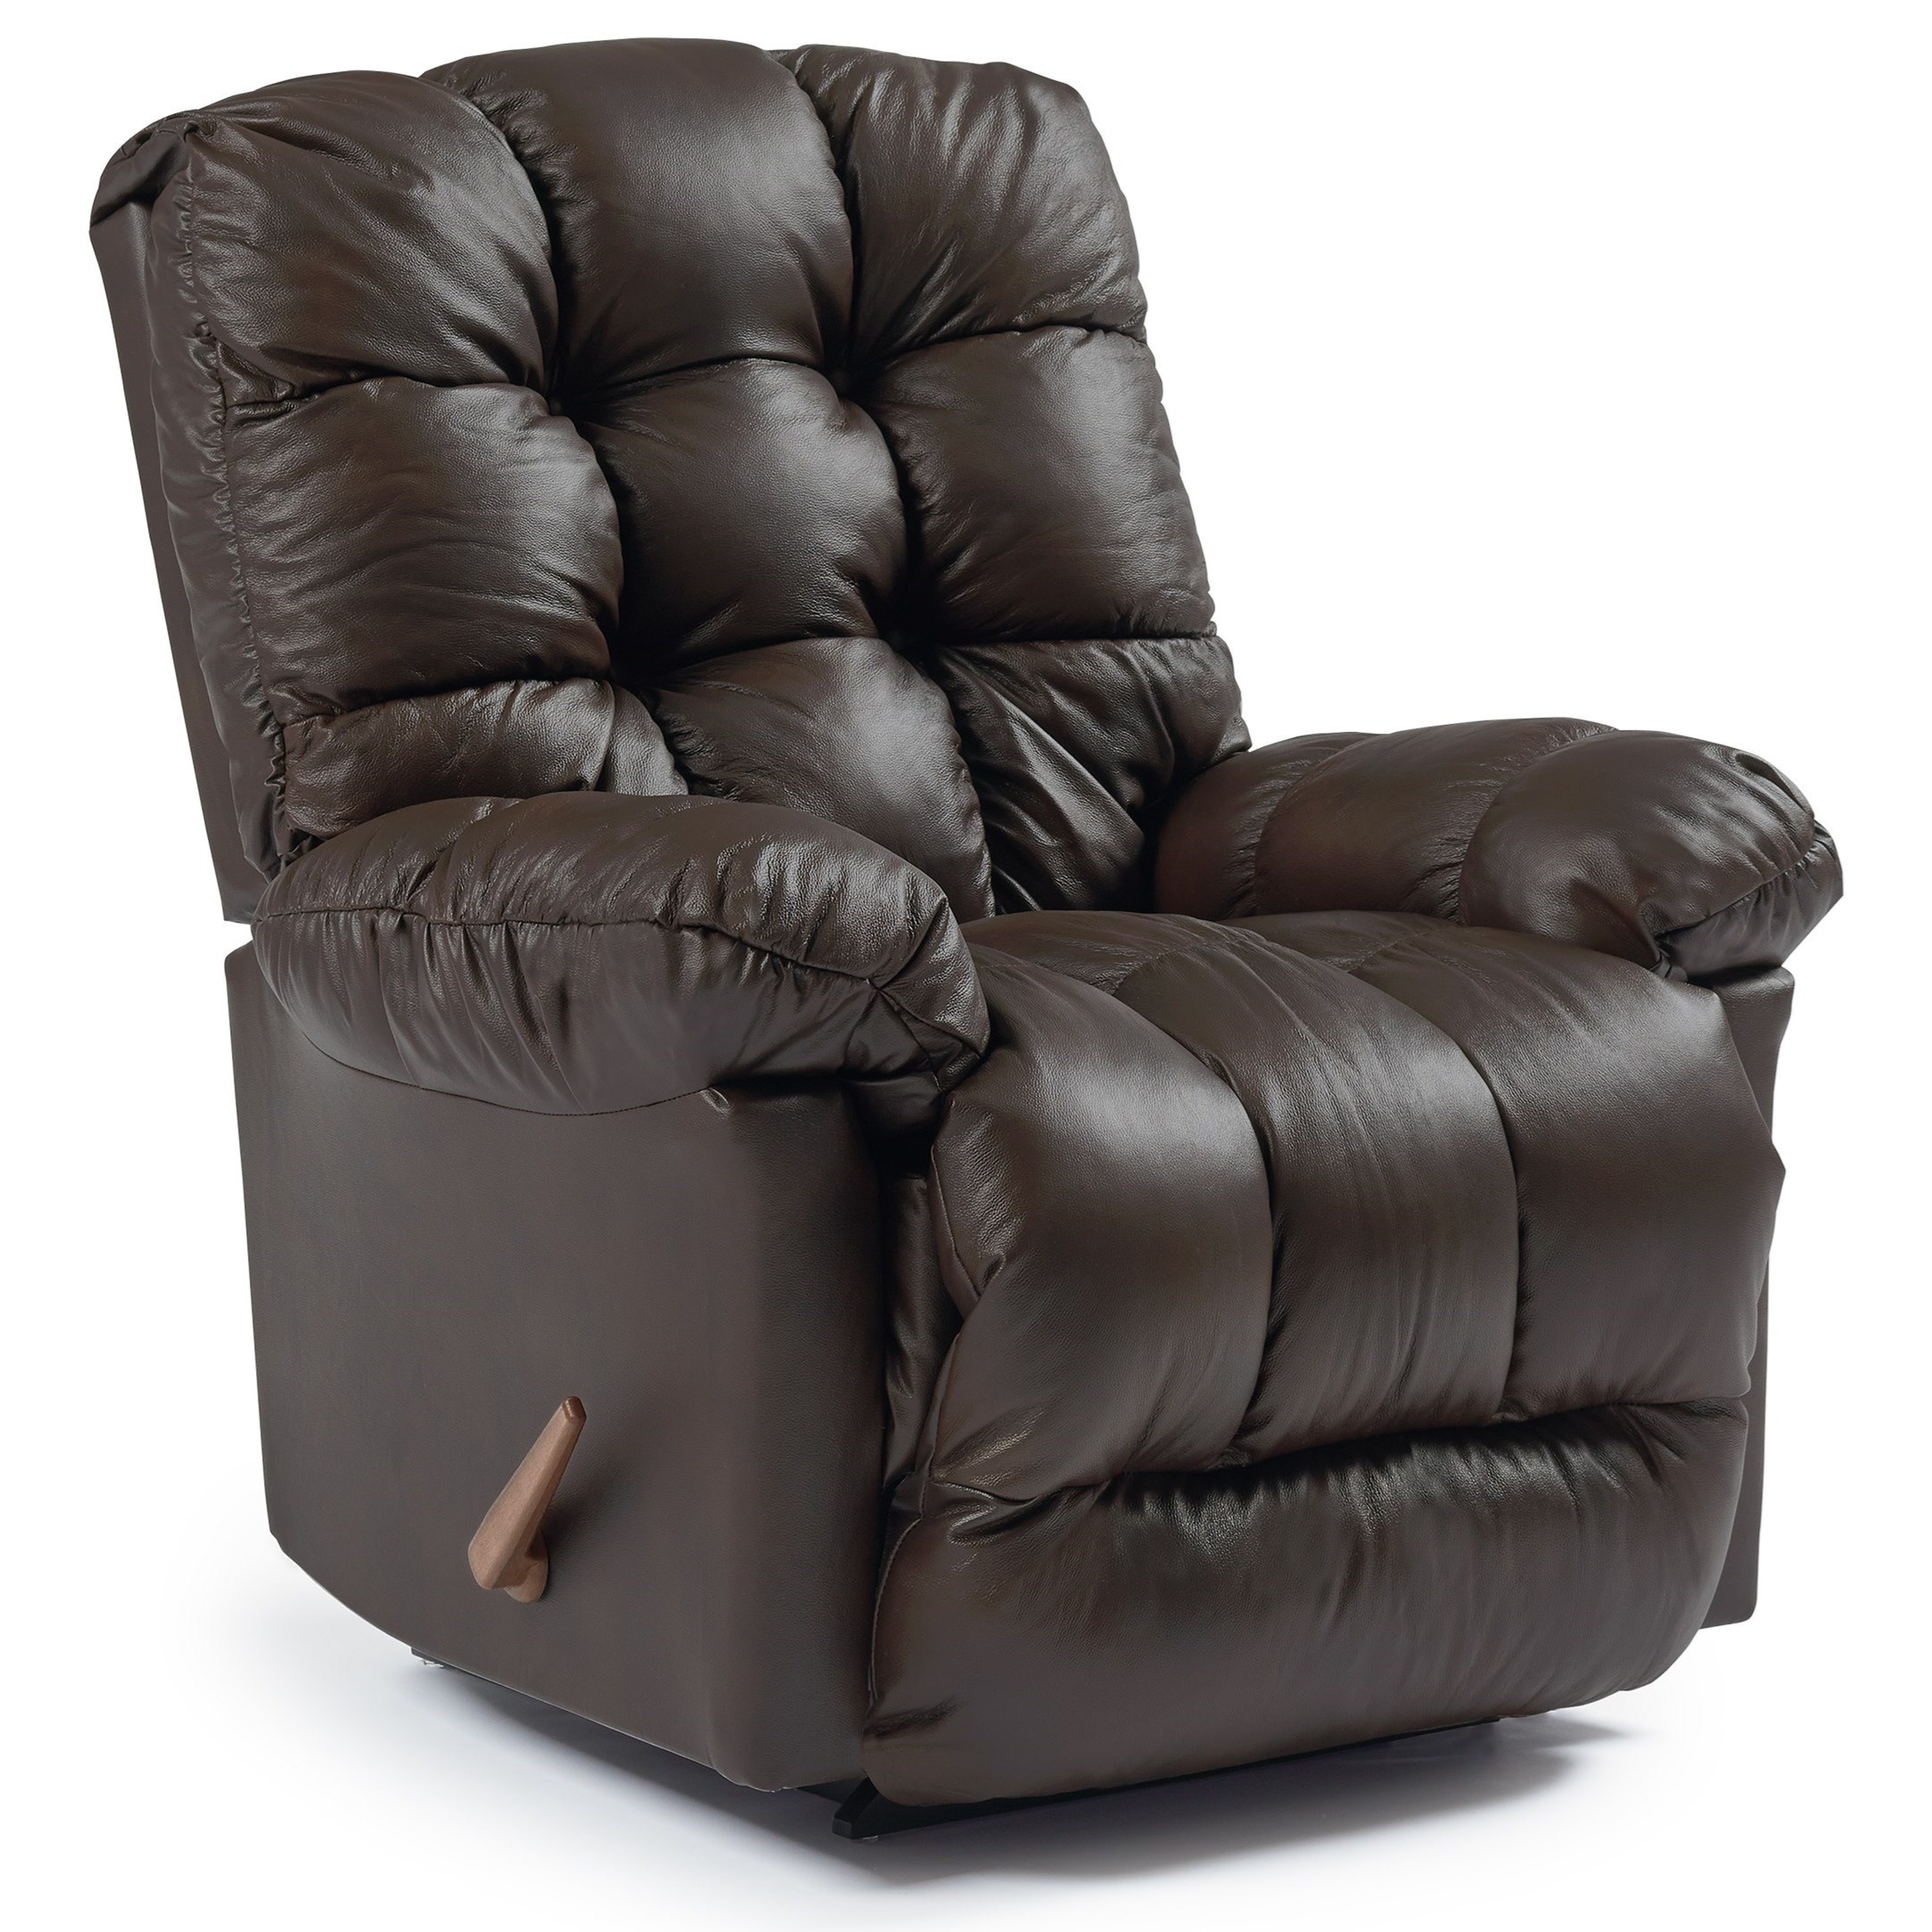 Swivel Rocker Recliner Chair Medium Recliners Brosmer Swivel Rocking Reclining Chair By Best Home Furnishings At Dunk Bright Furniture